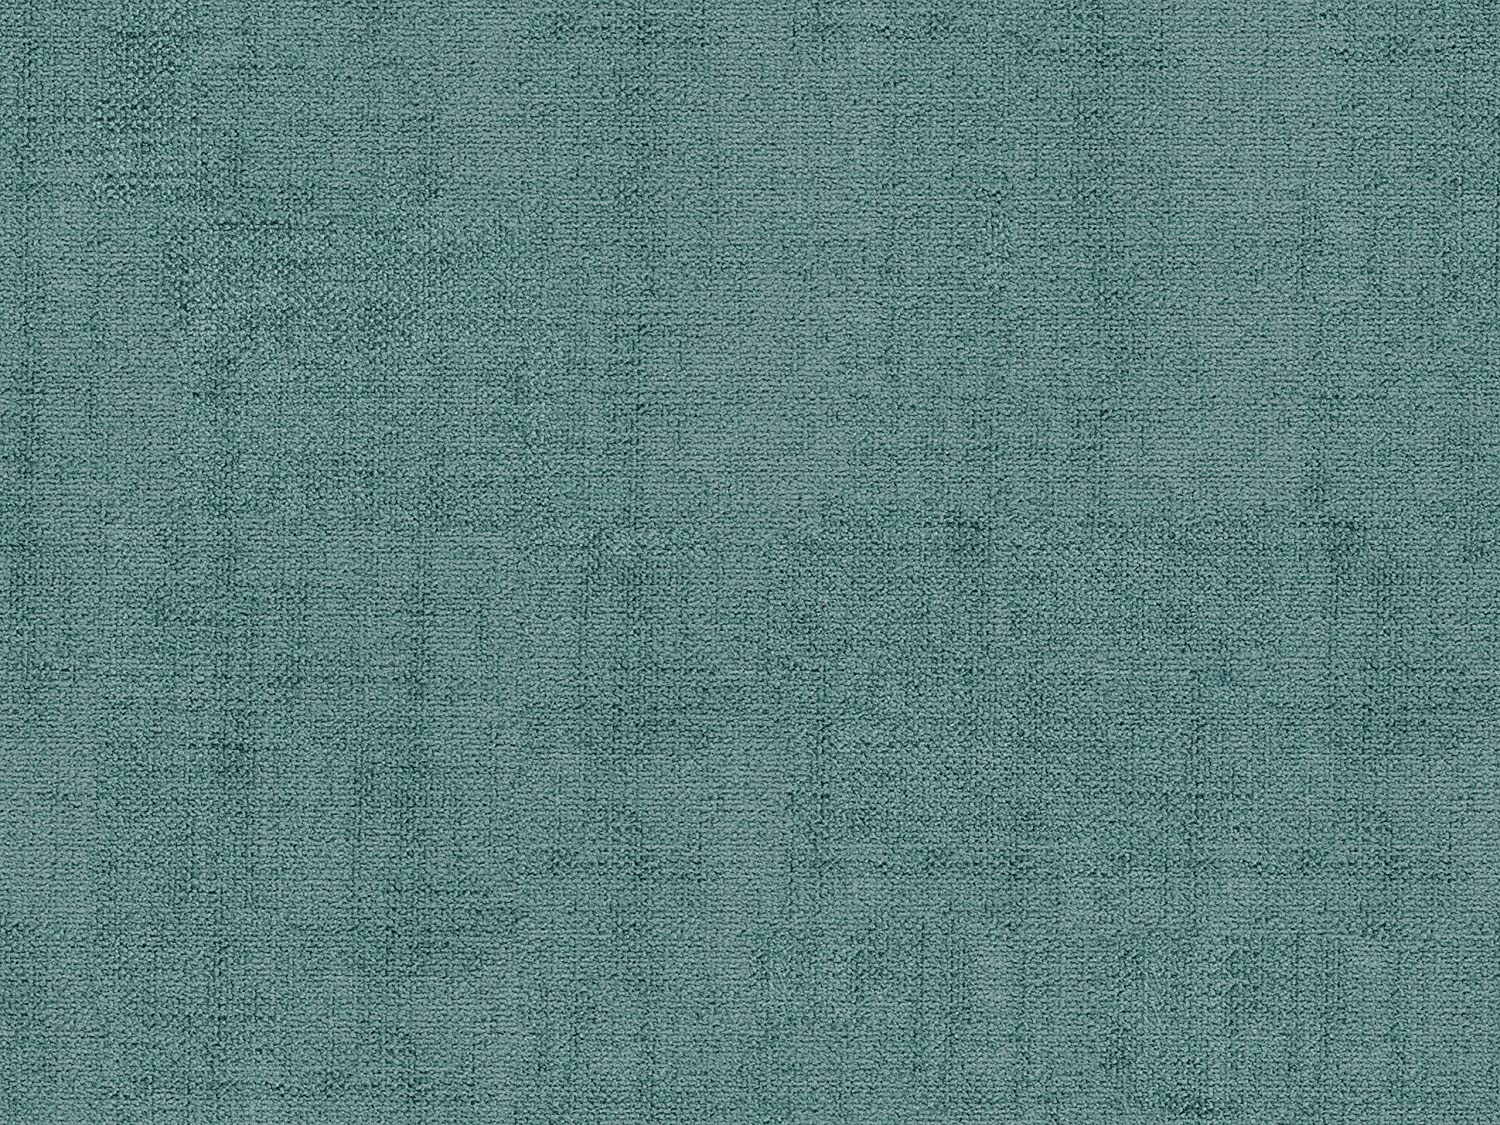 Liz Jordan Hill Featuring Spirit Collection - 321 Woven Chenille Upholstery Fabric by The Yard - Heavy Upholstery Fabric with Aquaclean Technology - Flat Sewn Top Stitching - Peacock